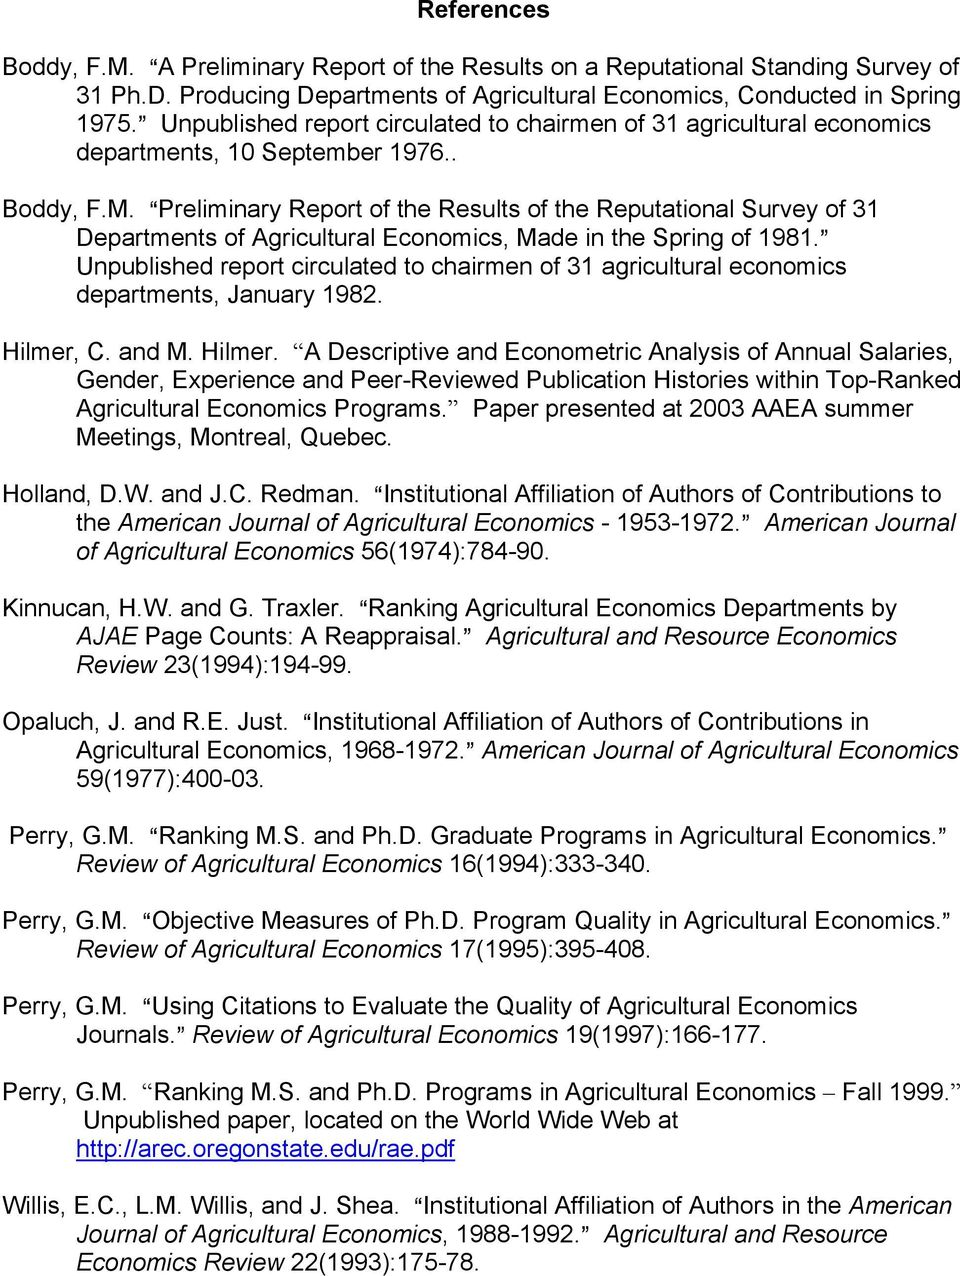 APreliminary Report of the Results of the Reputational Survey of 31 Departments of Agricultural Economics, Made in the Spring of 1981.